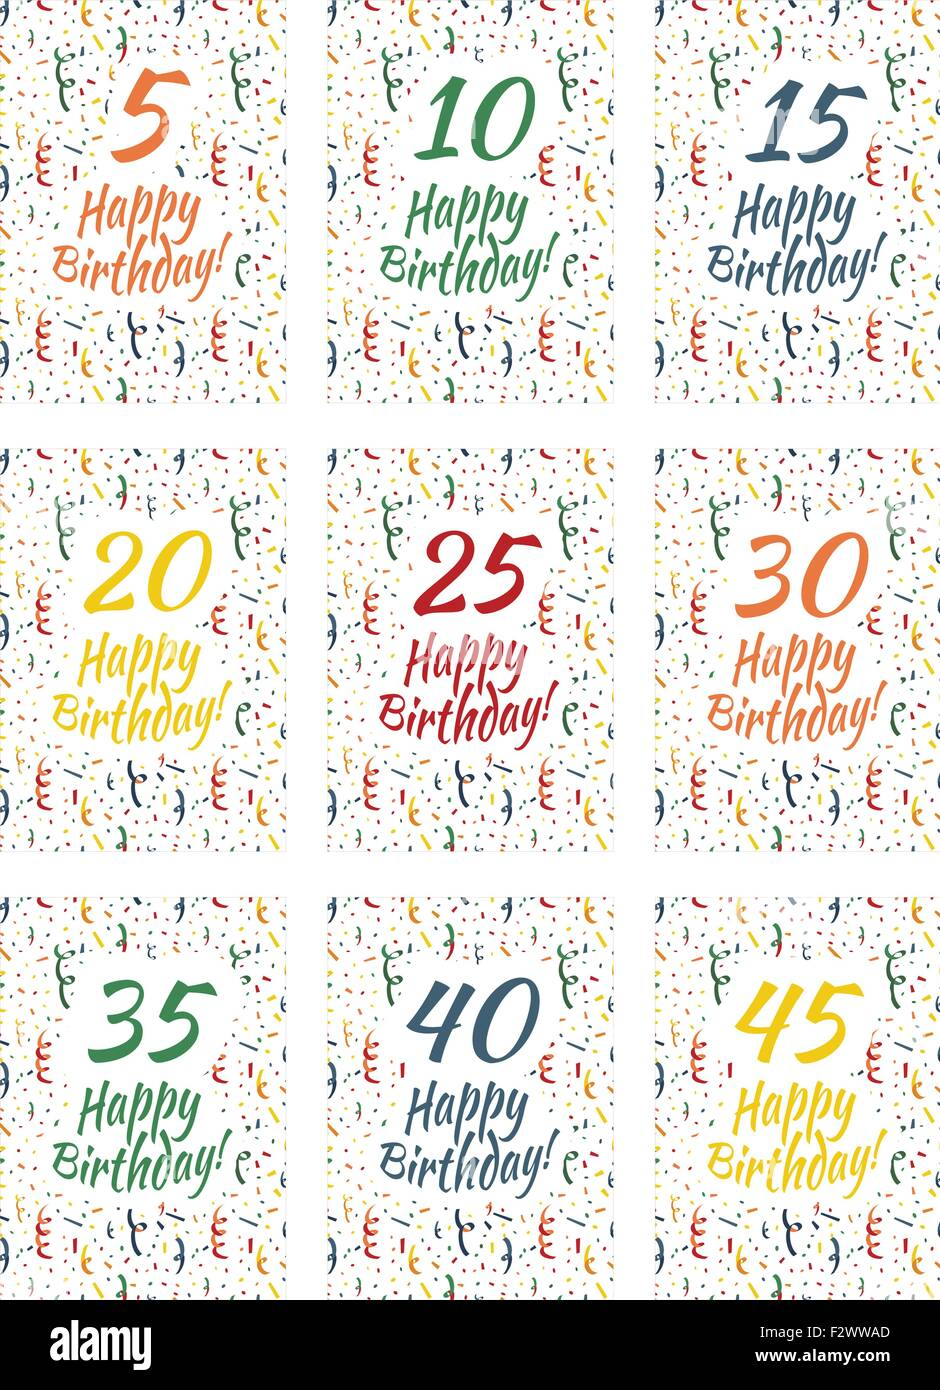 Set of happy birthday card covers for anniversary 5,10,15,20,25,30,35,40,45 years - Stock Vector